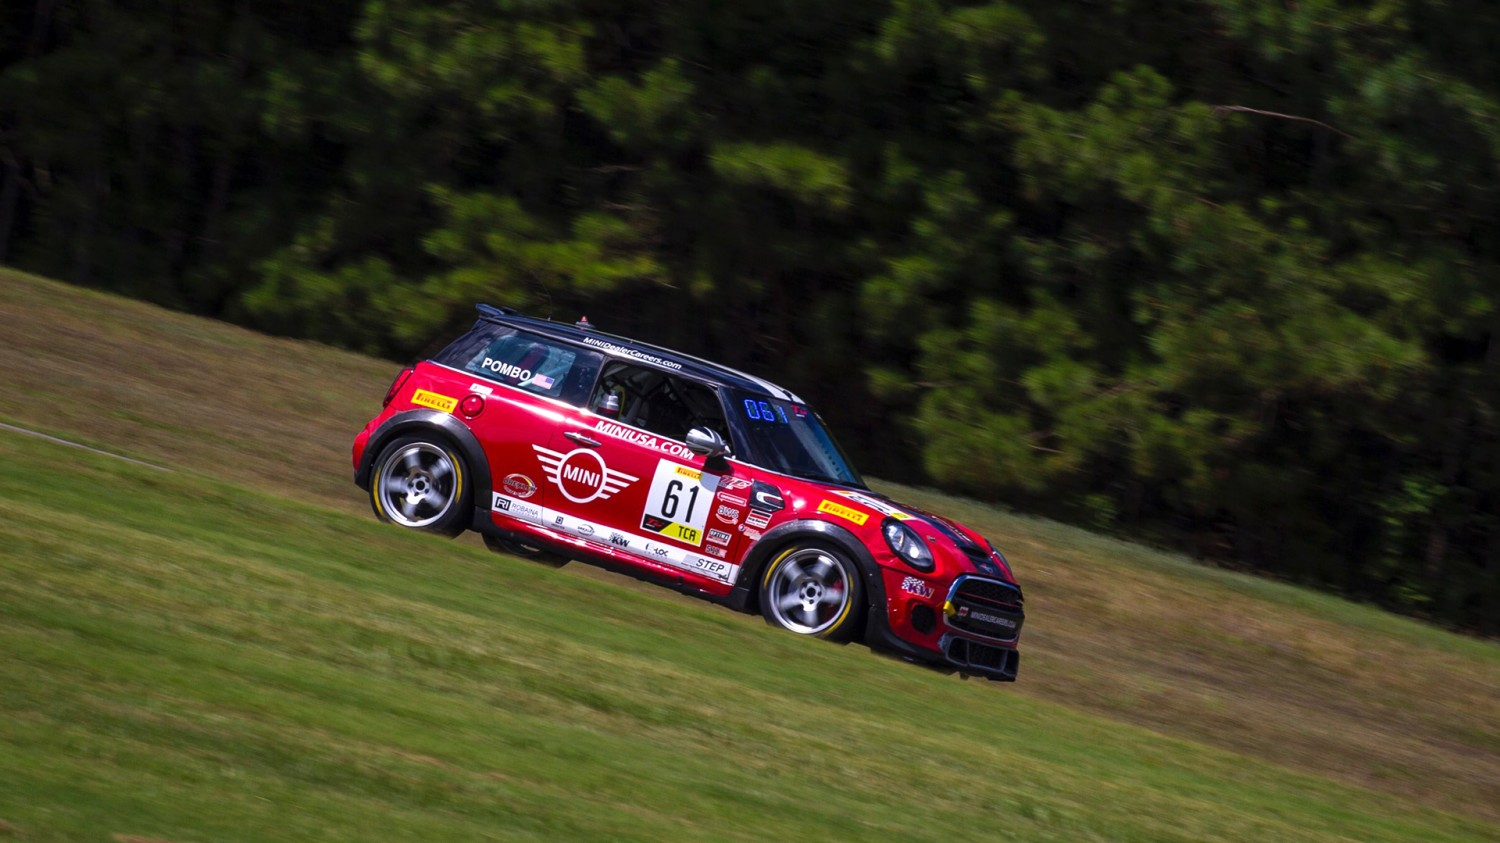 Maxson Takes Pole For TC America Race 1 at VIR; Grahovec In TC; Pombo Takes TCA